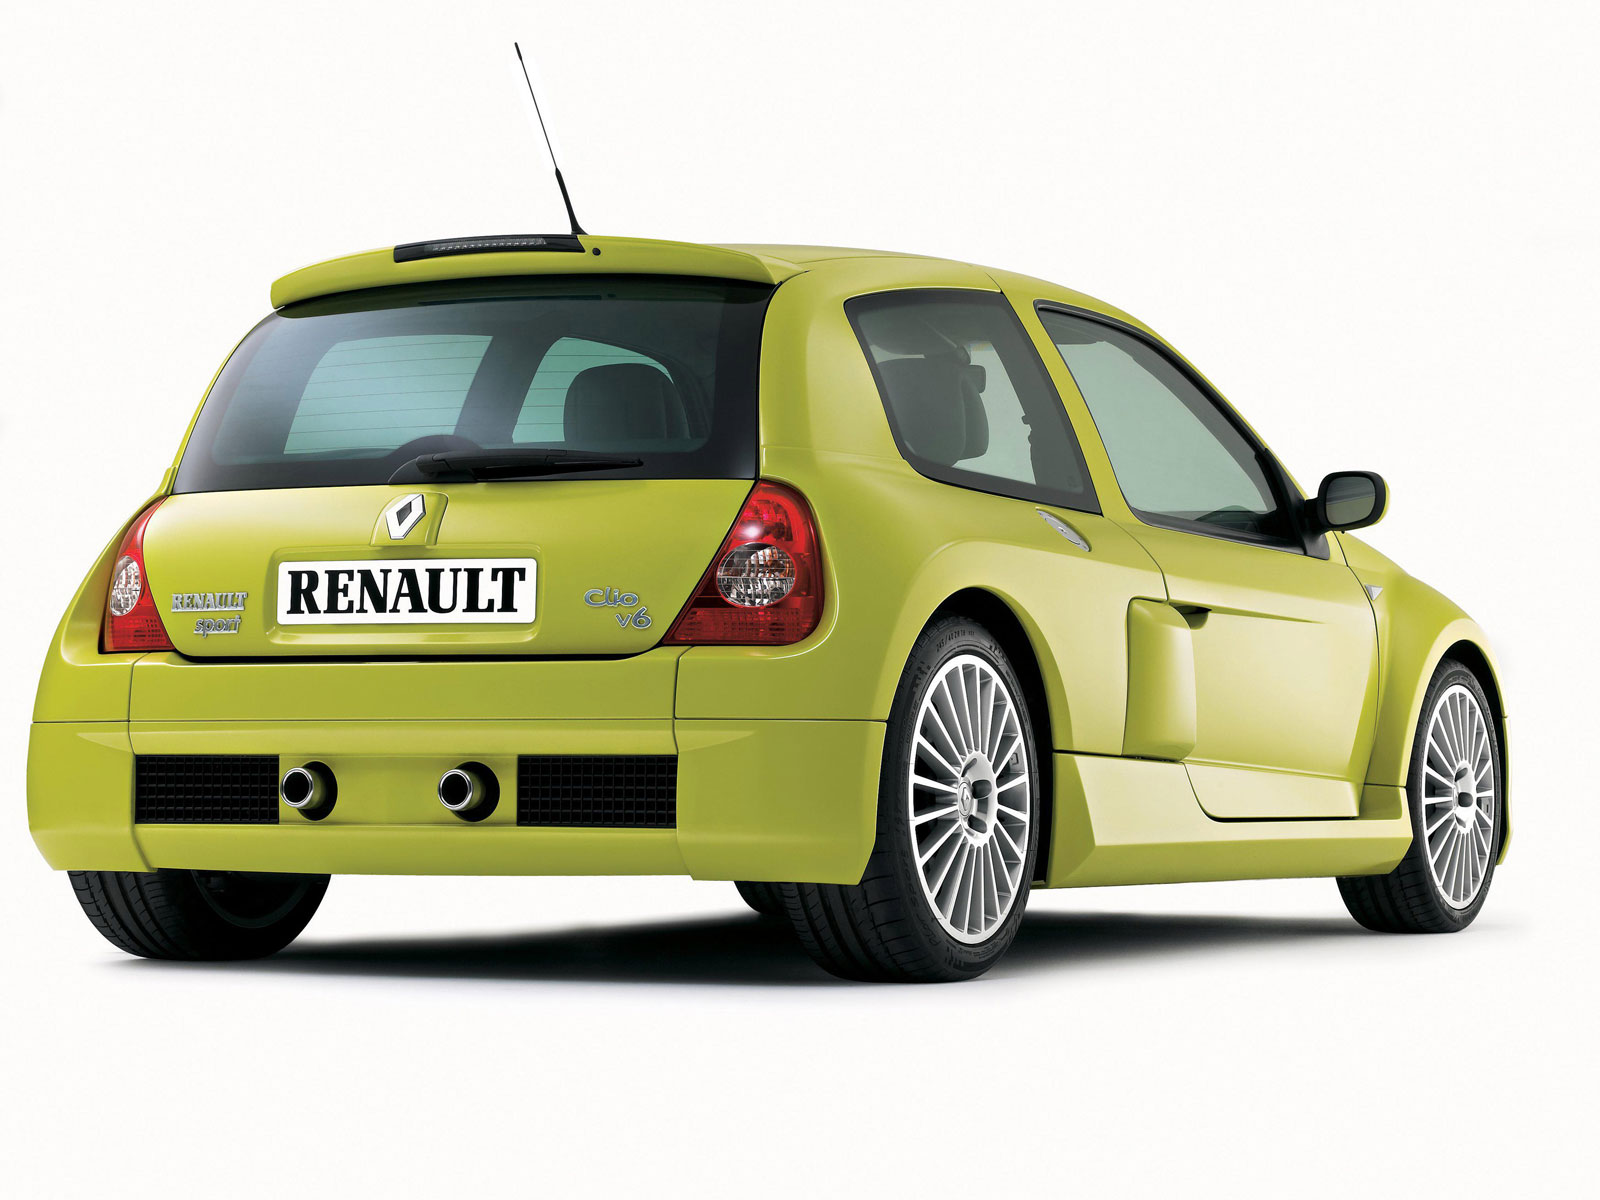 renault clio v6 renault wallpaper 31466546 fanpop. Black Bedroom Furniture Sets. Home Design Ideas